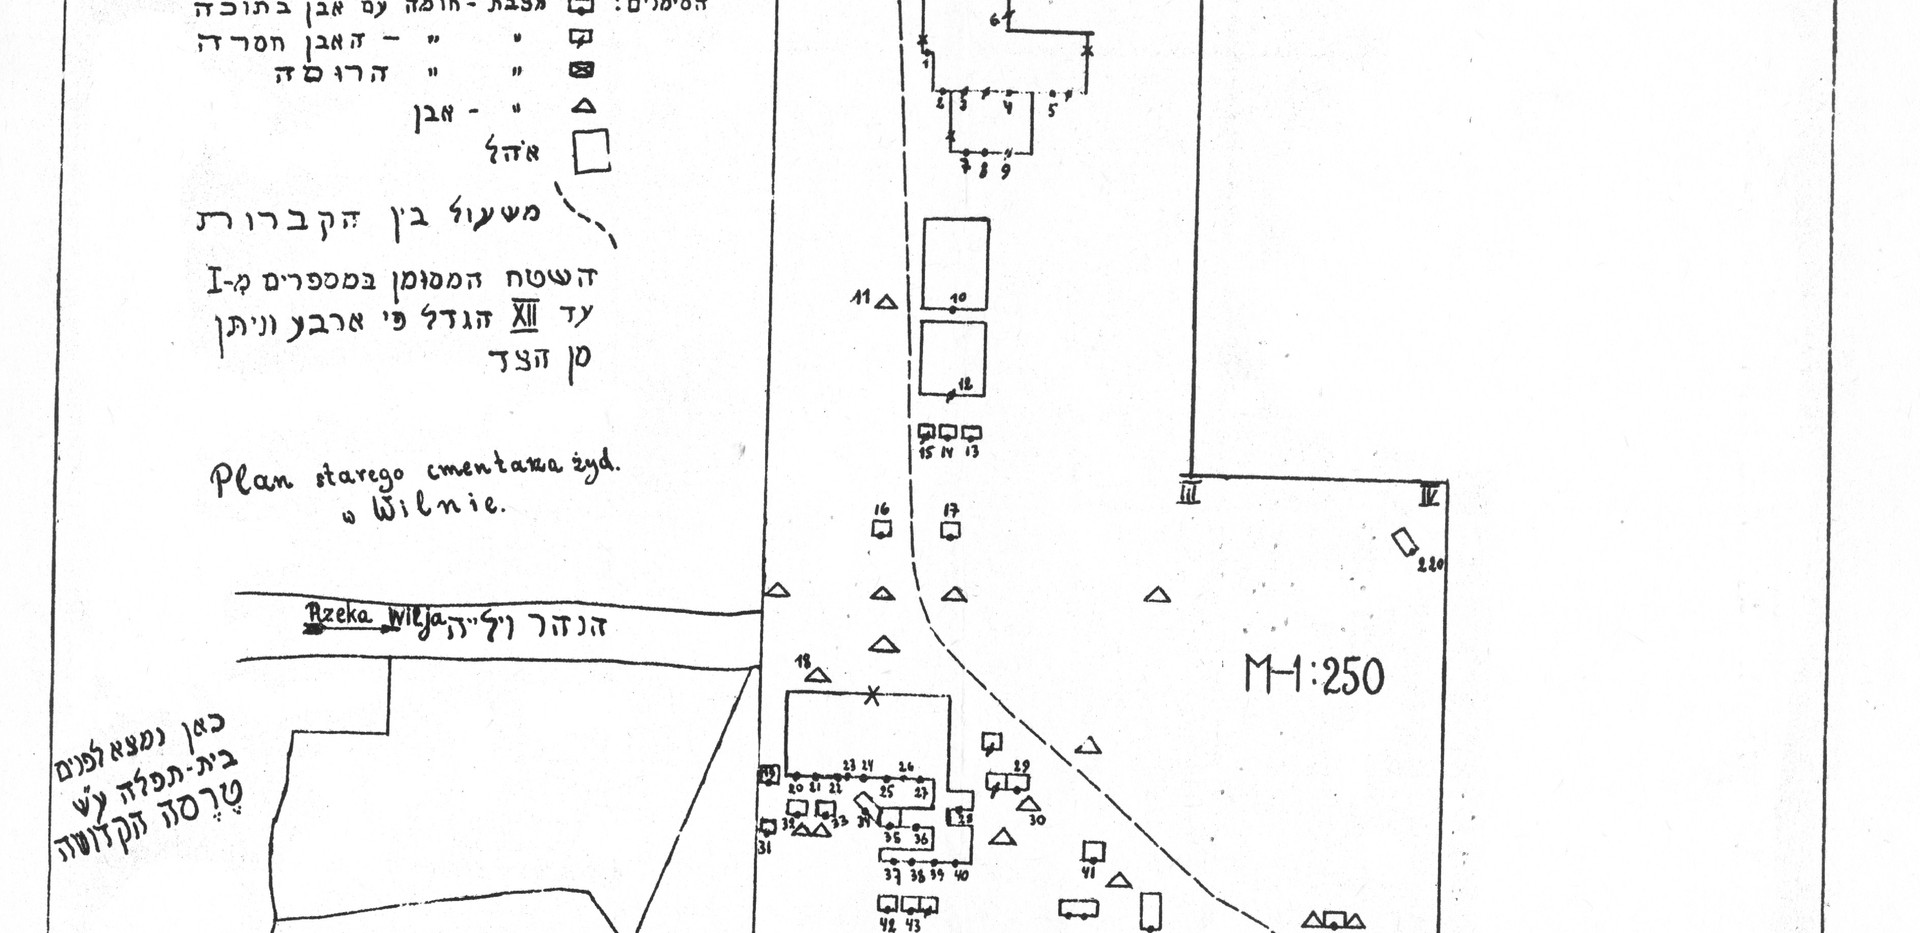 Klausner Map of Old Jewish Cemetery, top